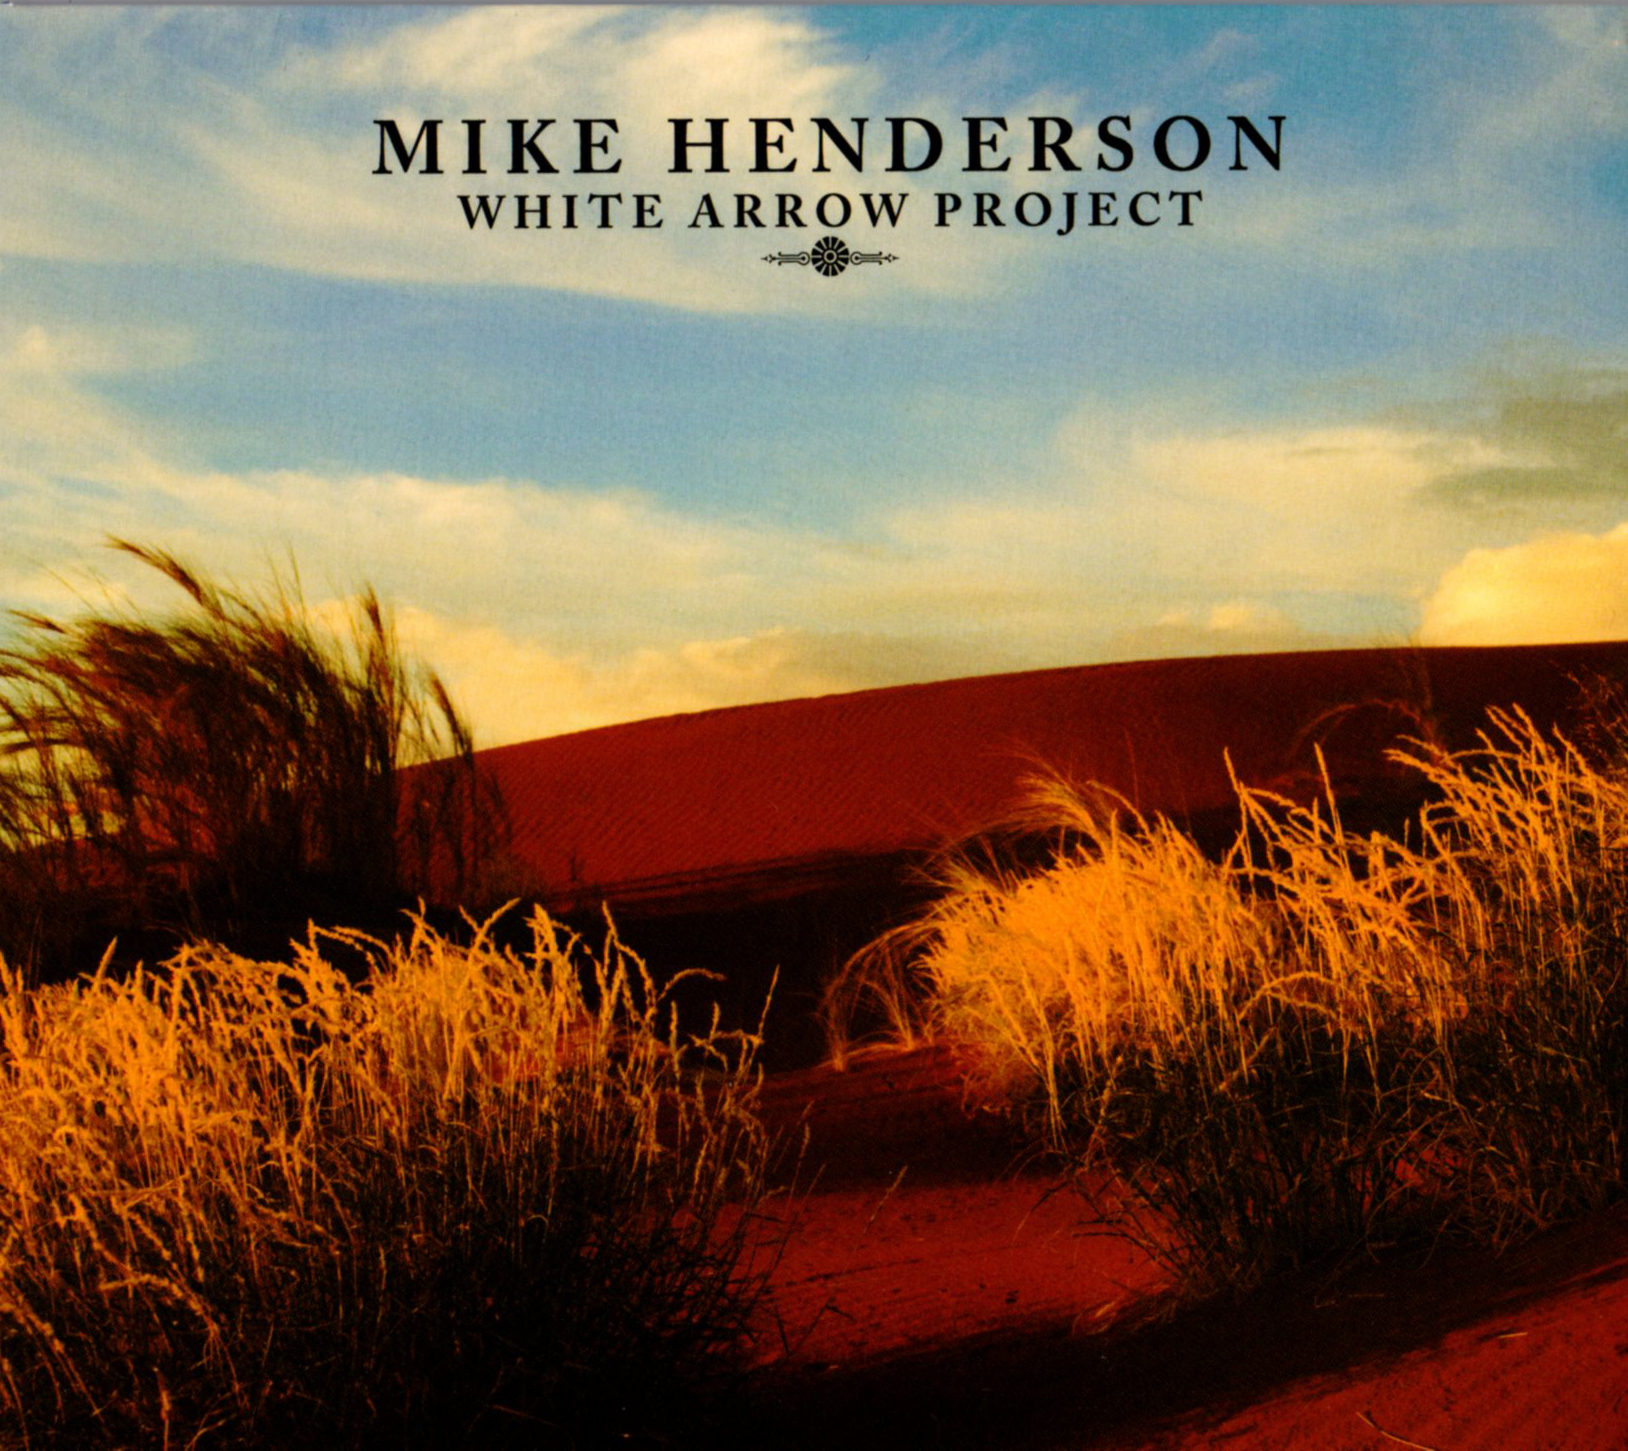 Mike Henderson: The White Arrow Project